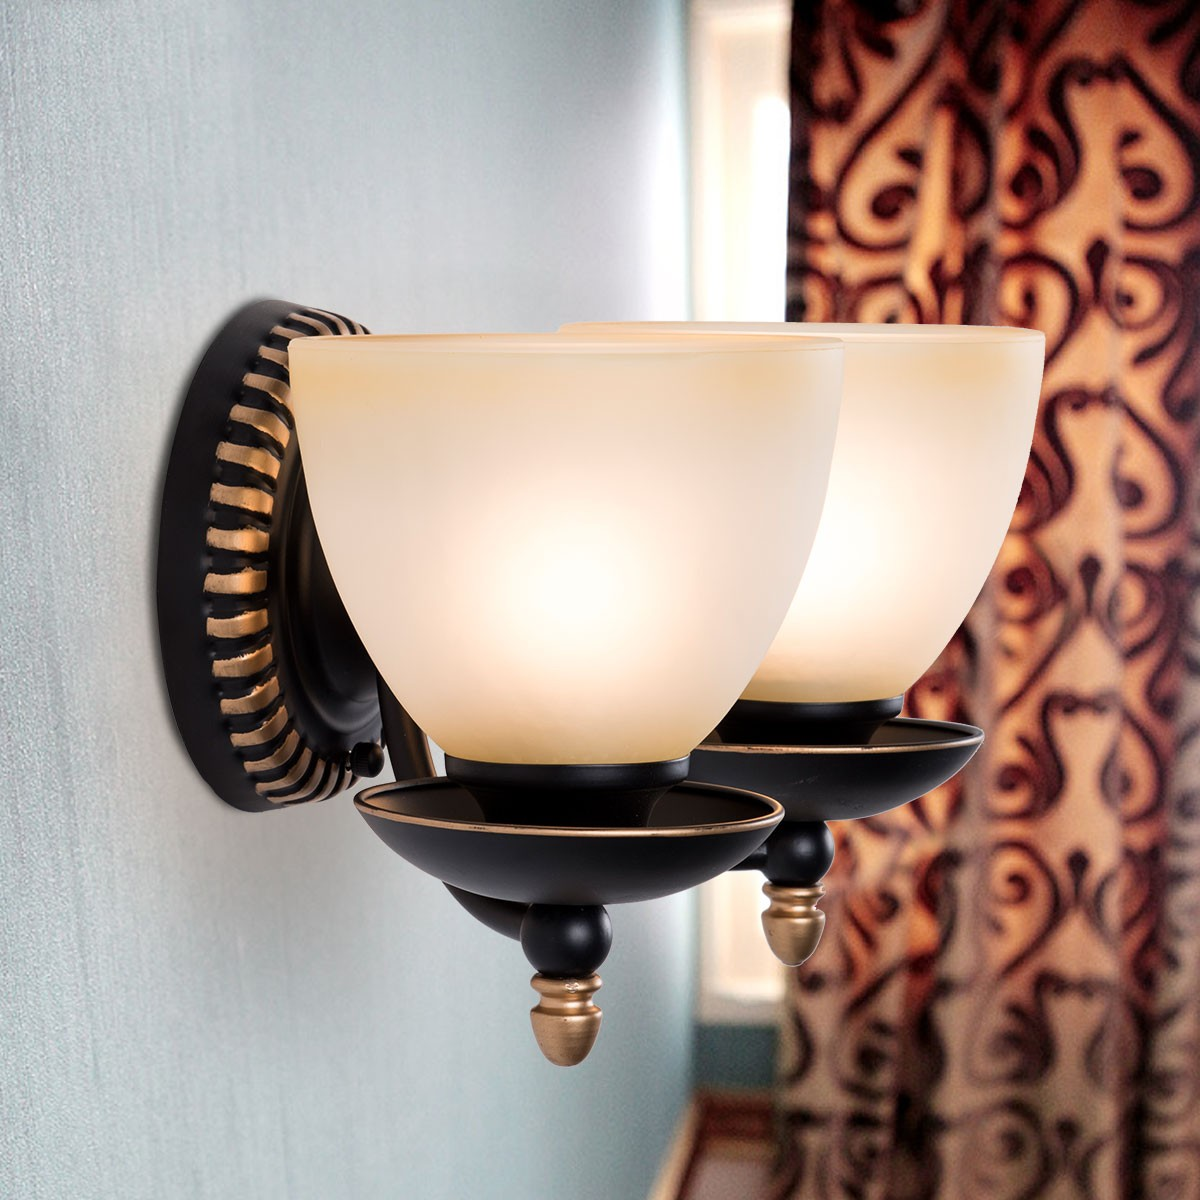 2-Light Black Wrought Iron Wall Sconce with Glass Shades (DK-2037-2W)